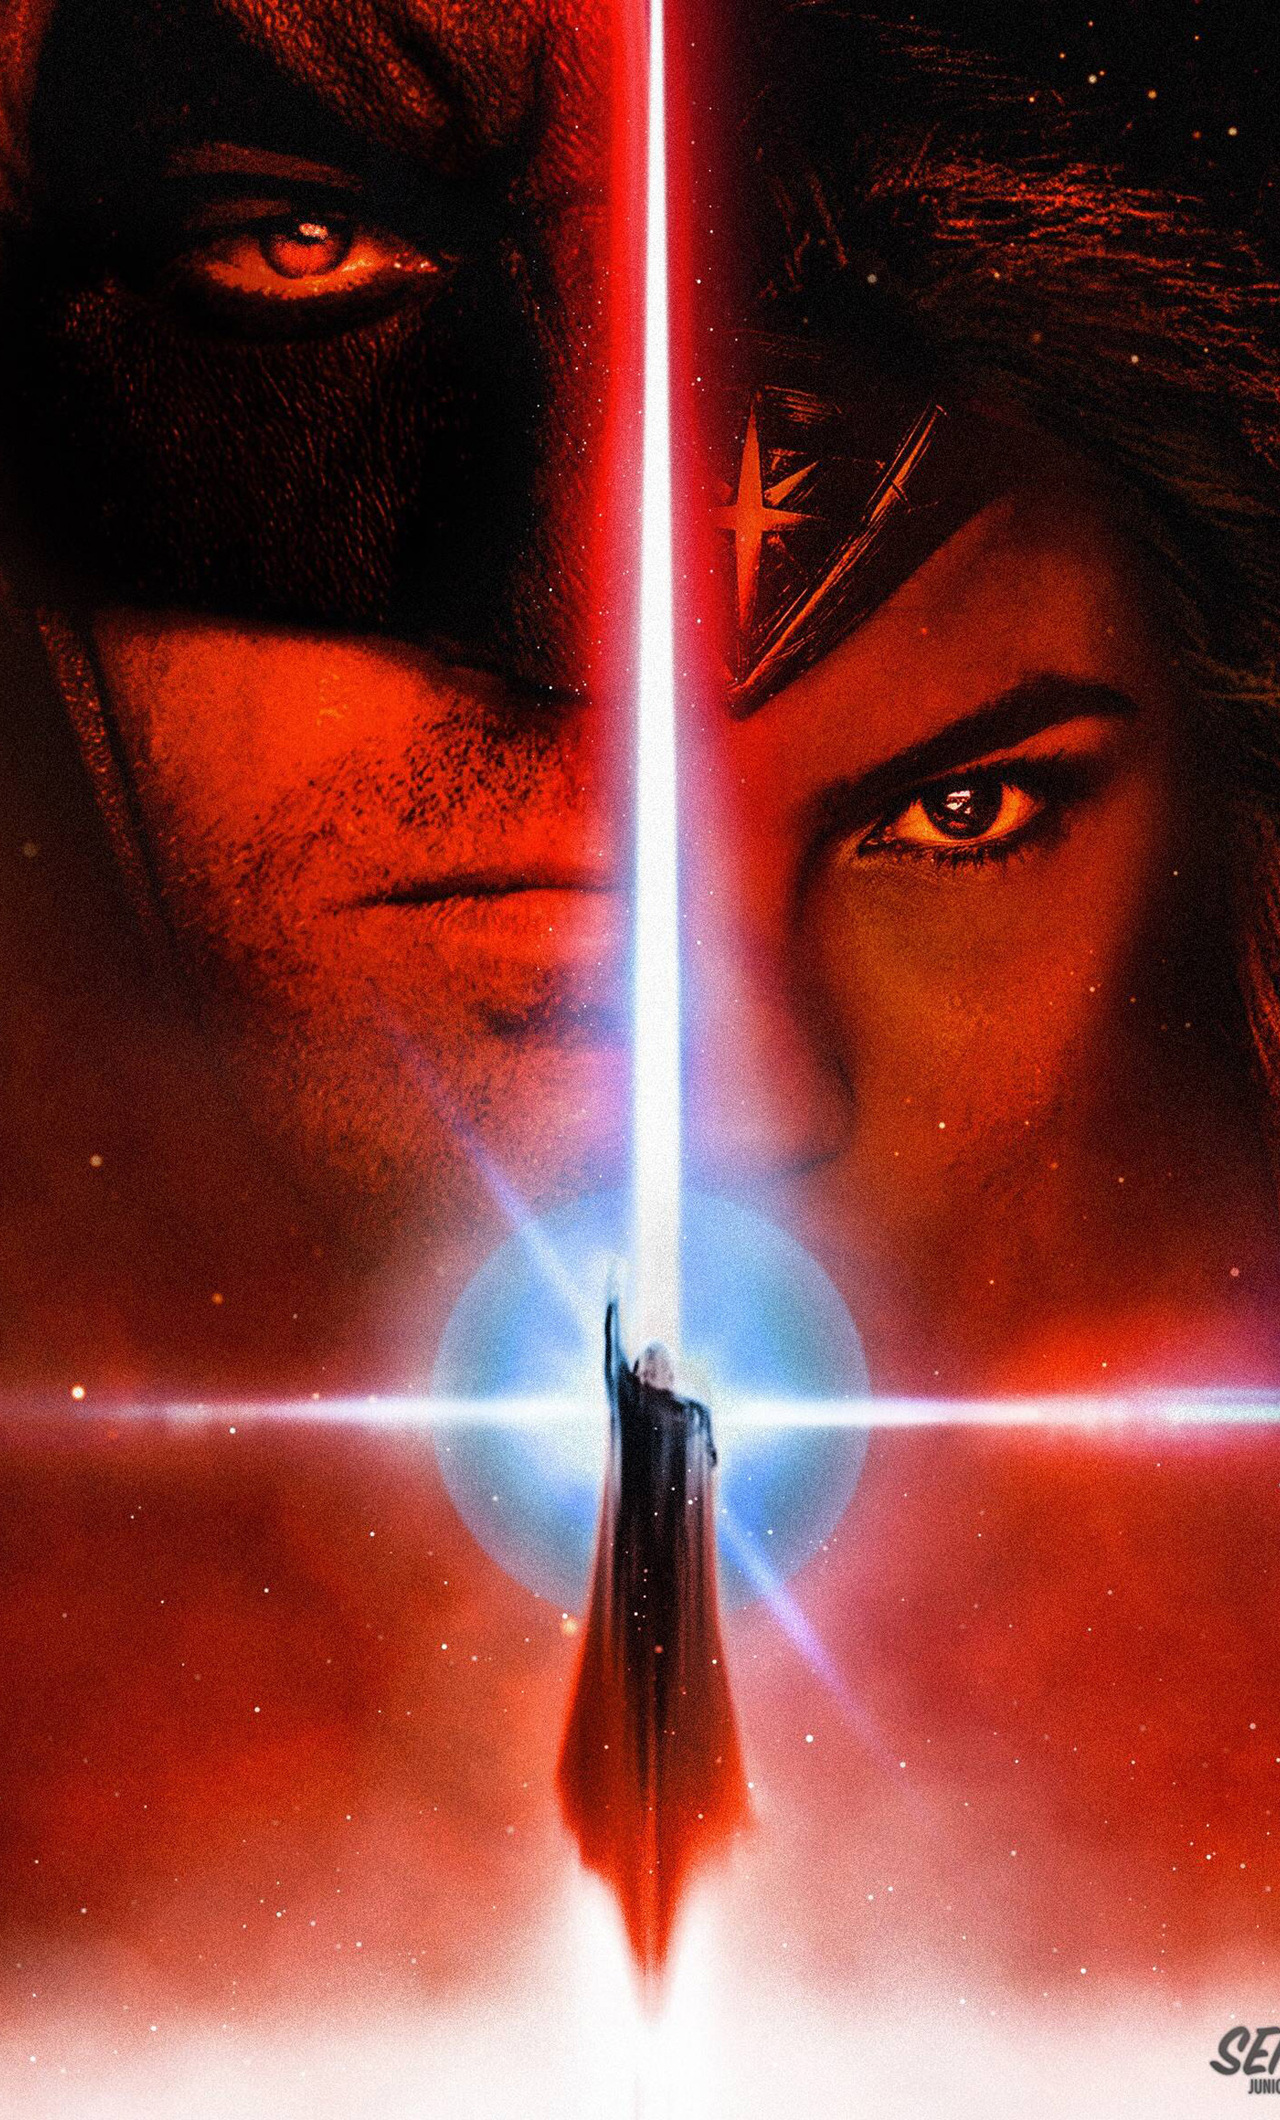 batman-wonder-woman-star-wars-style-fan-art-v1.jpg